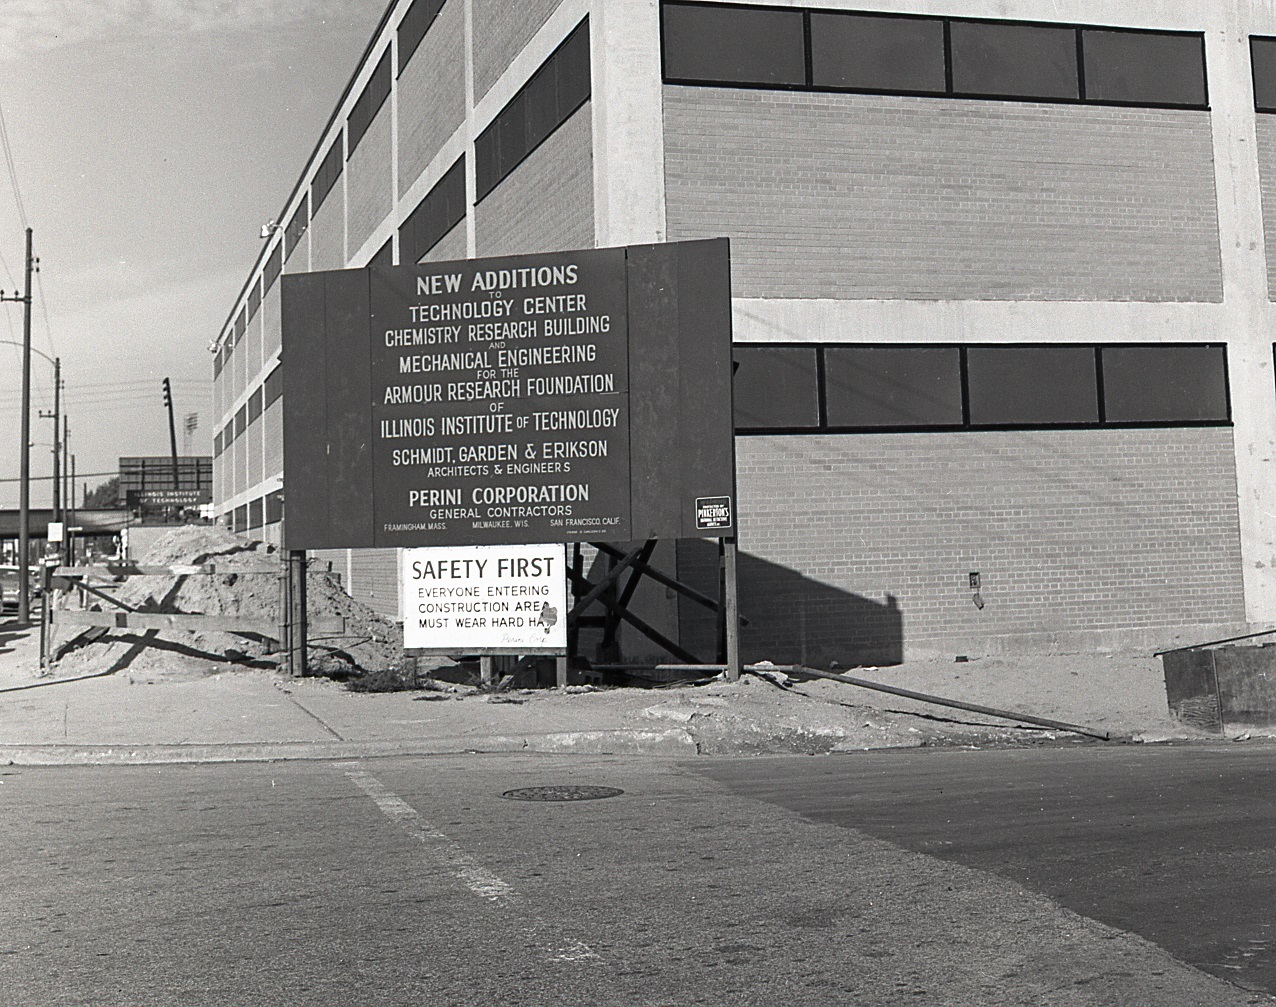 Armour Research Foundation Chemistry Research Building during construction